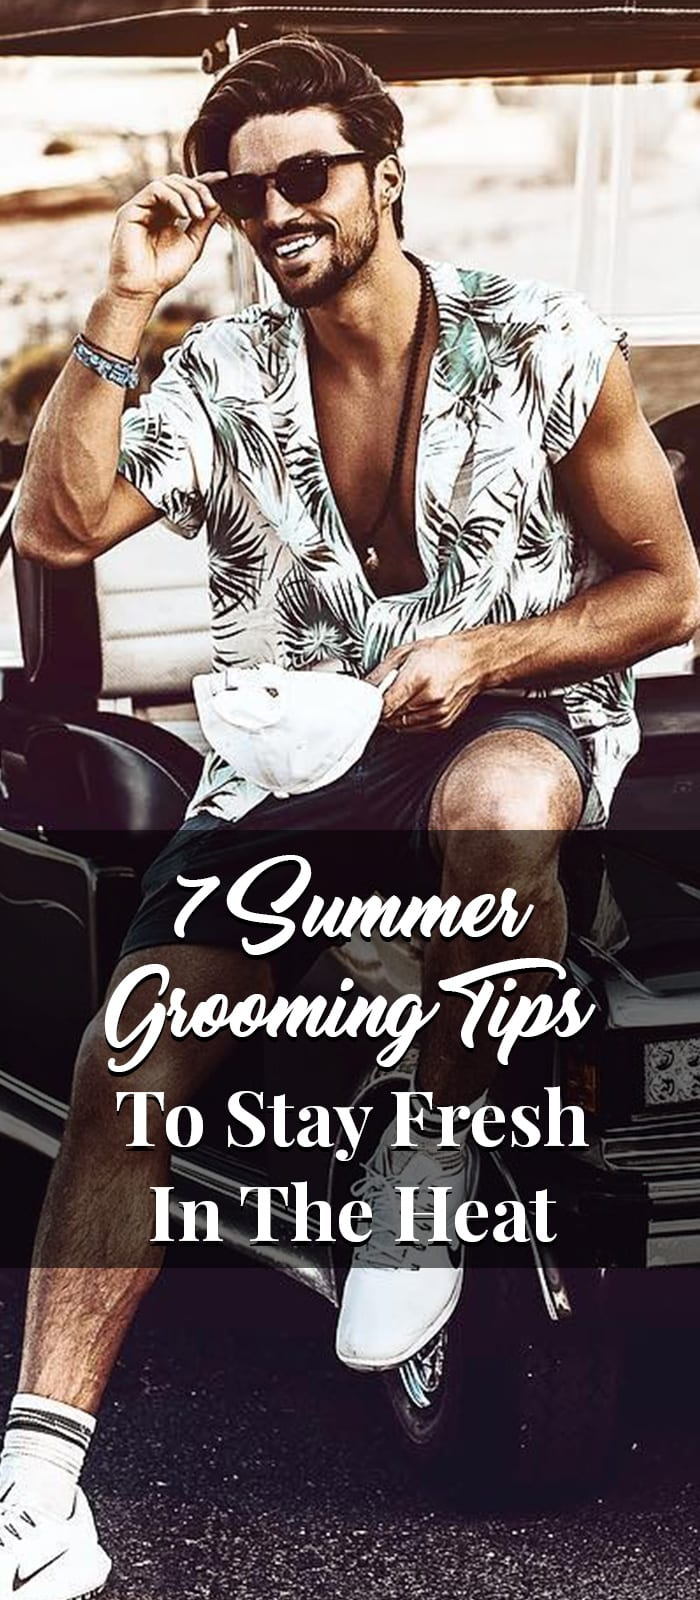 7 Summer Grooming Tips To Stay Fresh In The Heat